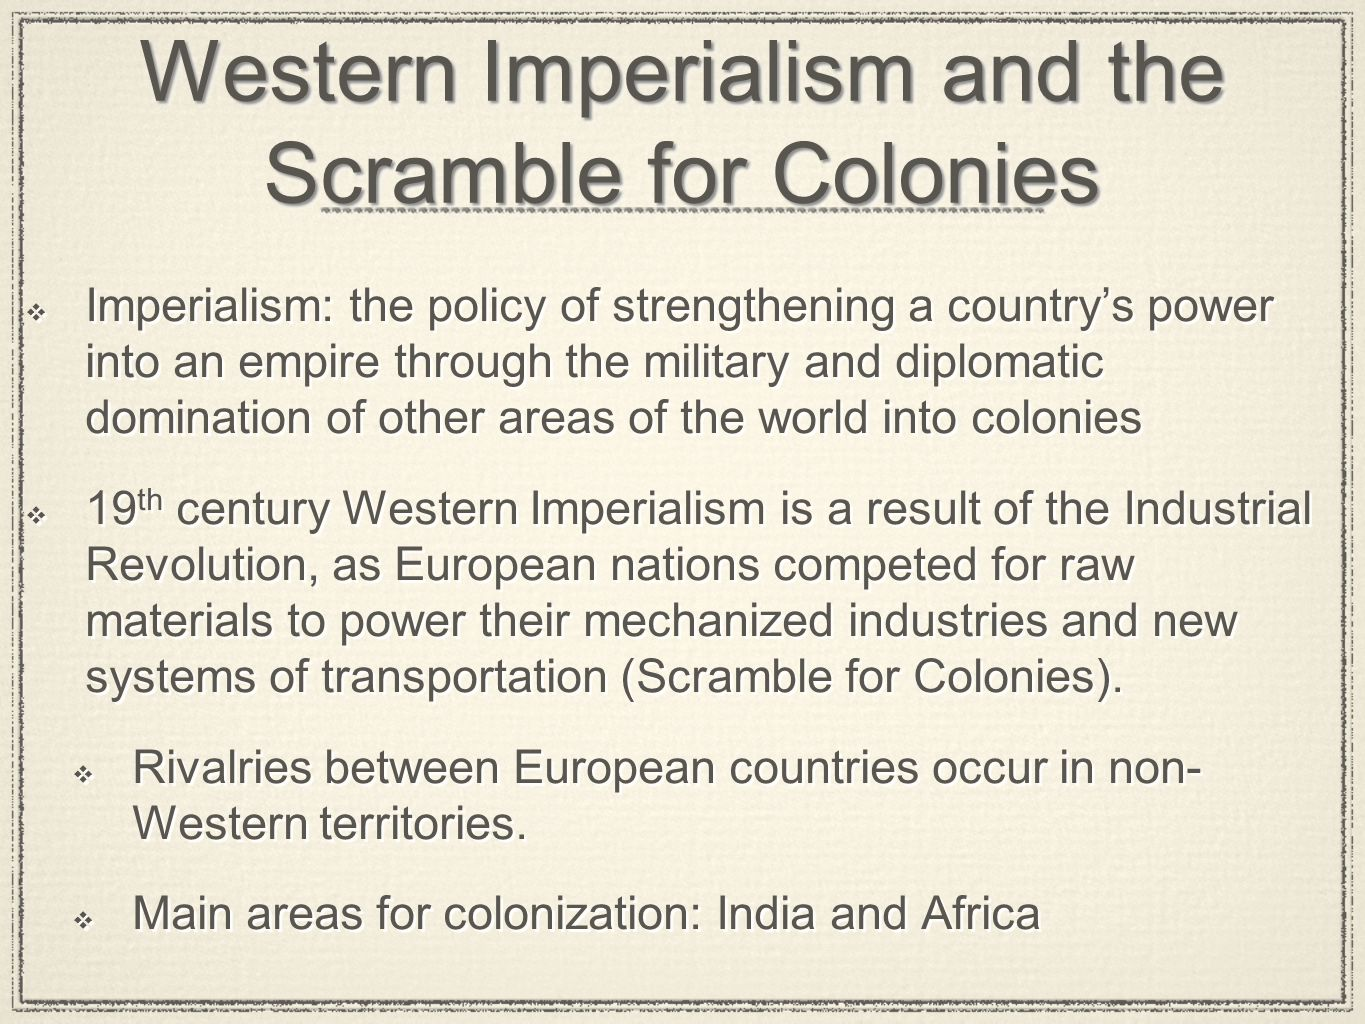 Western Imperialism and the Scramble for Colonies